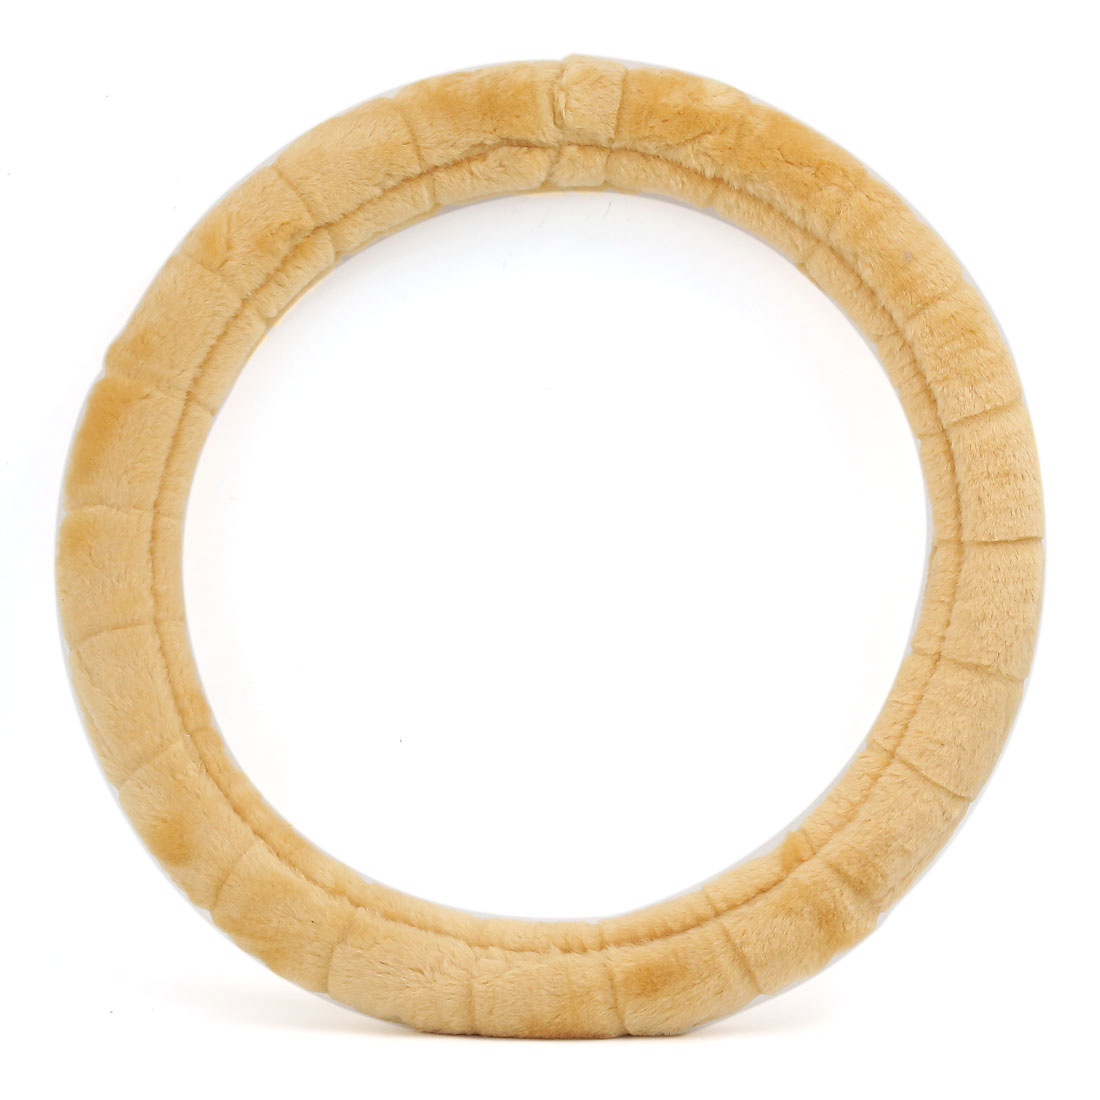 Universal Soft Plush Fuzzy Auto Car Steering Wheel Cover Gold Tone for Winter